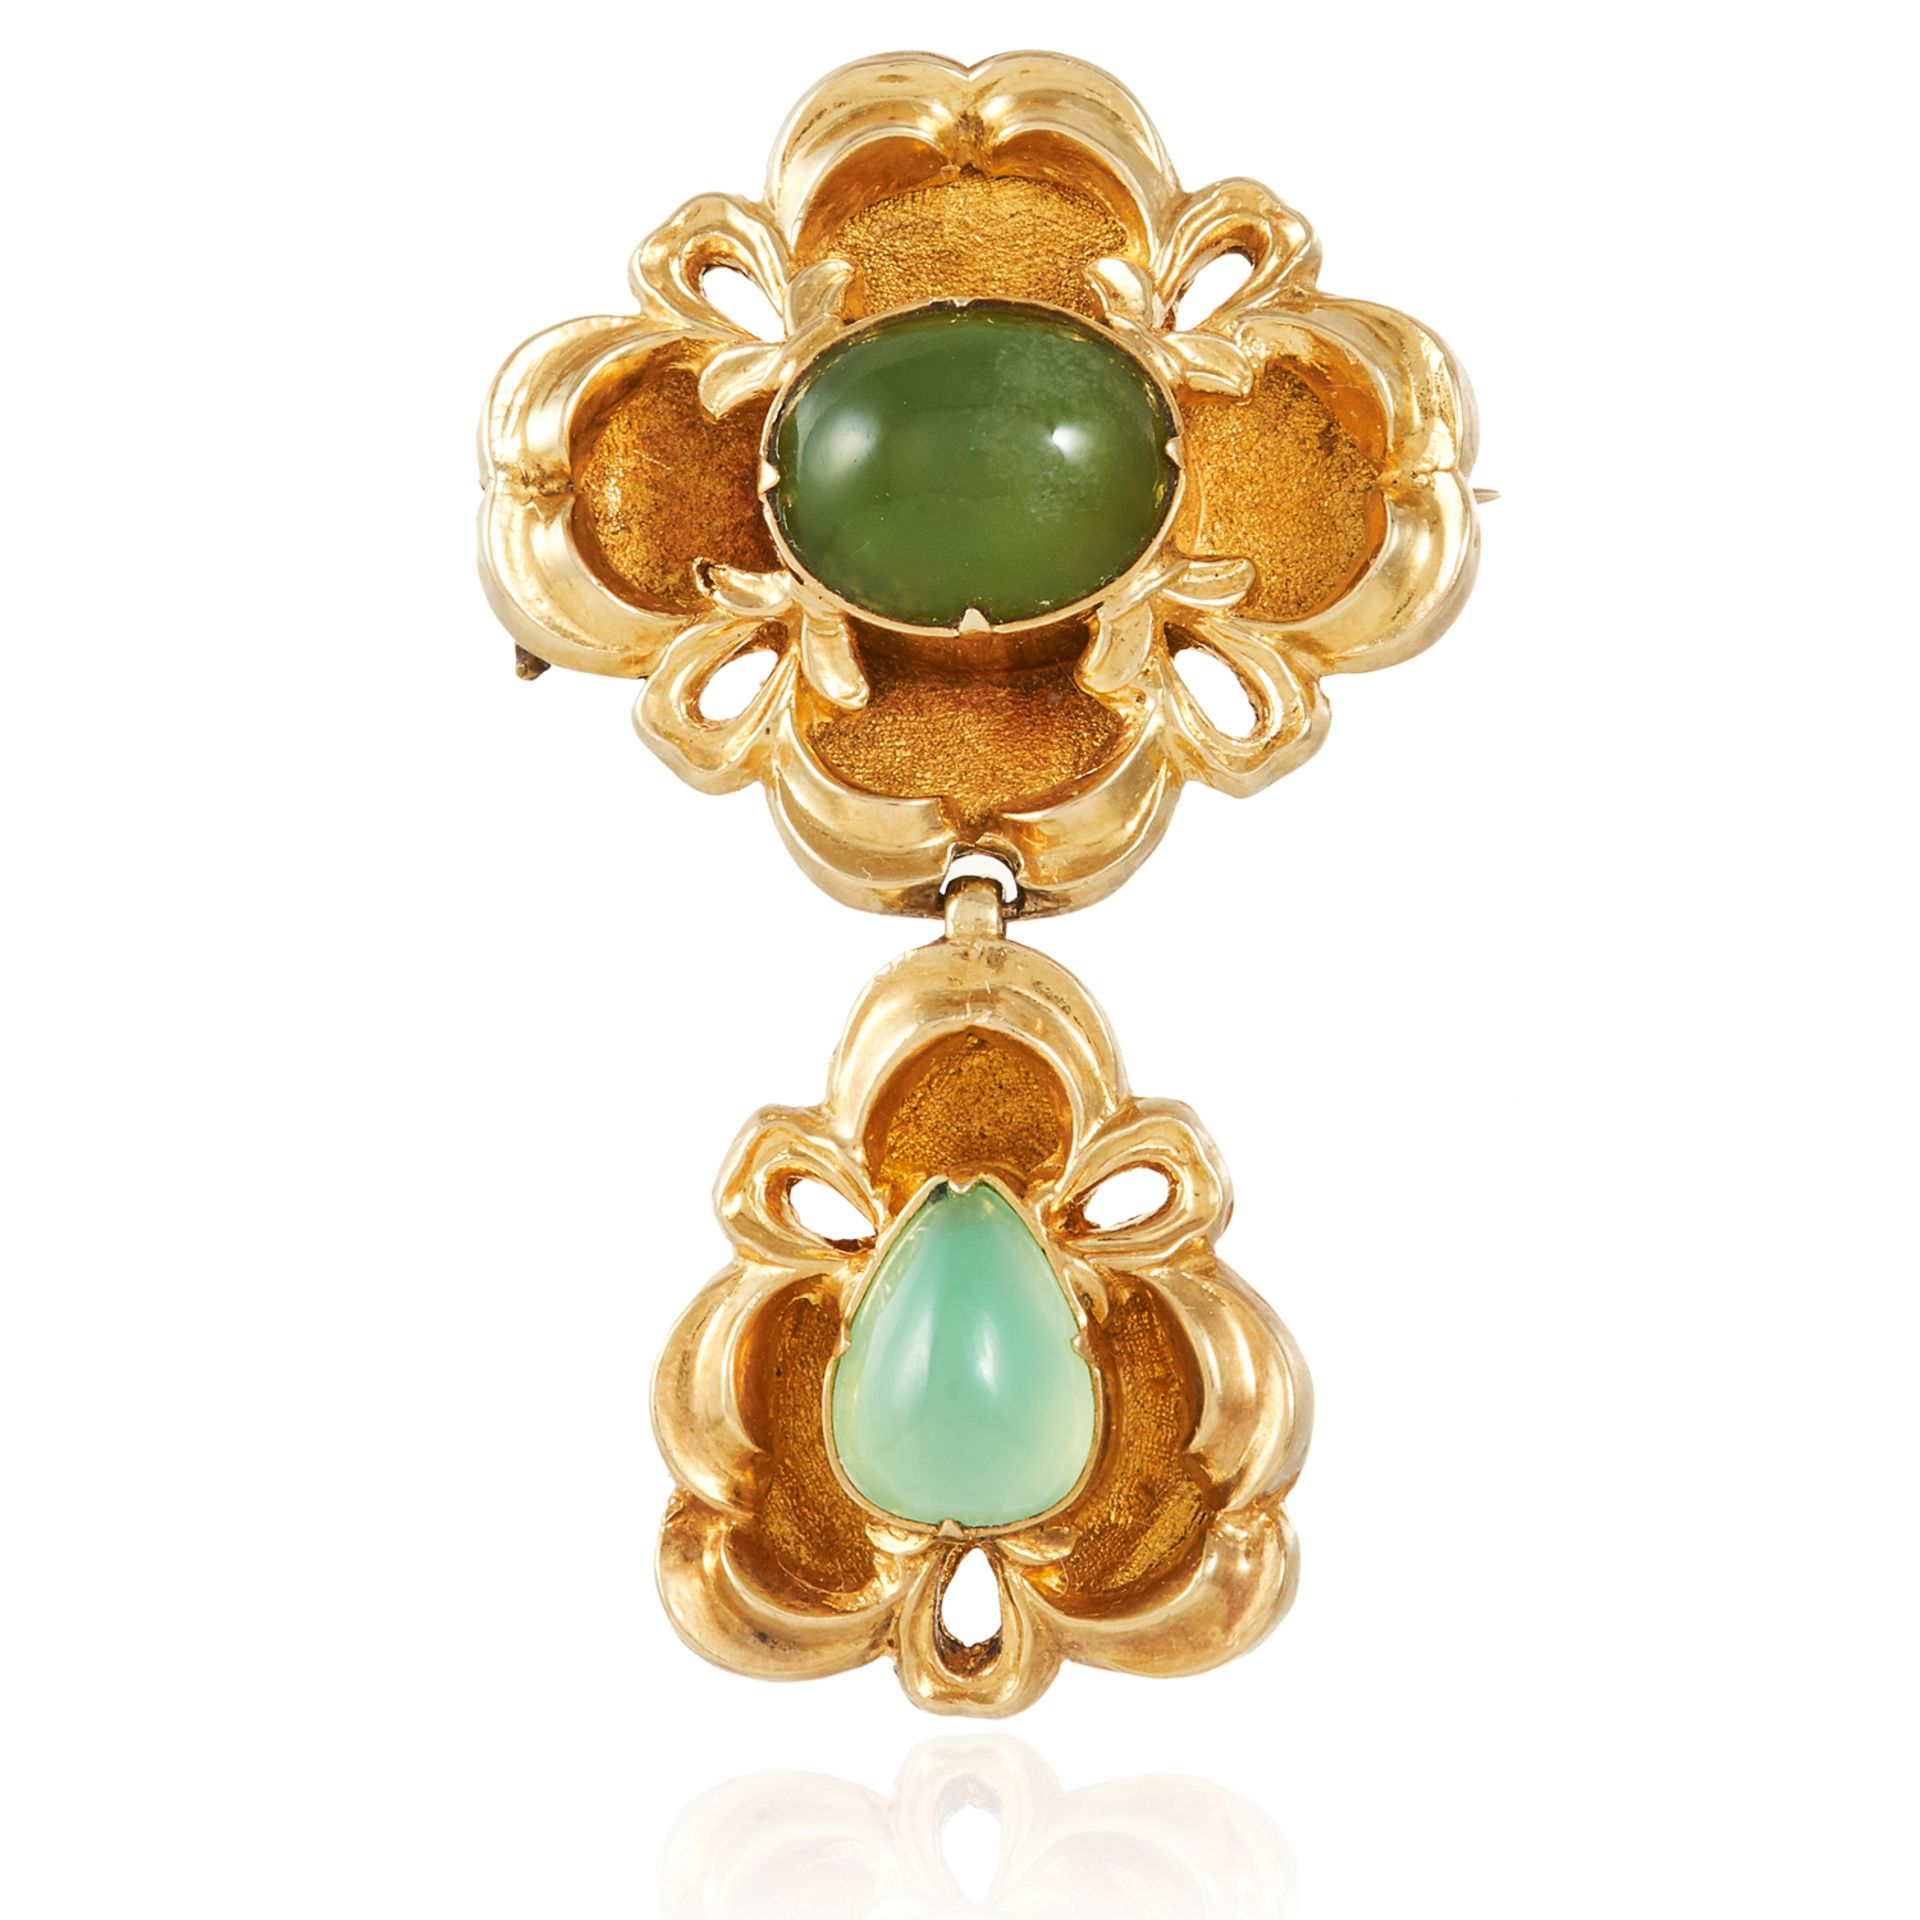 ANTIQUE CHRYSOPRASE MOURNING BROOCH, 19TH CENTURY set with two cabochon chrysoprase in scrolling